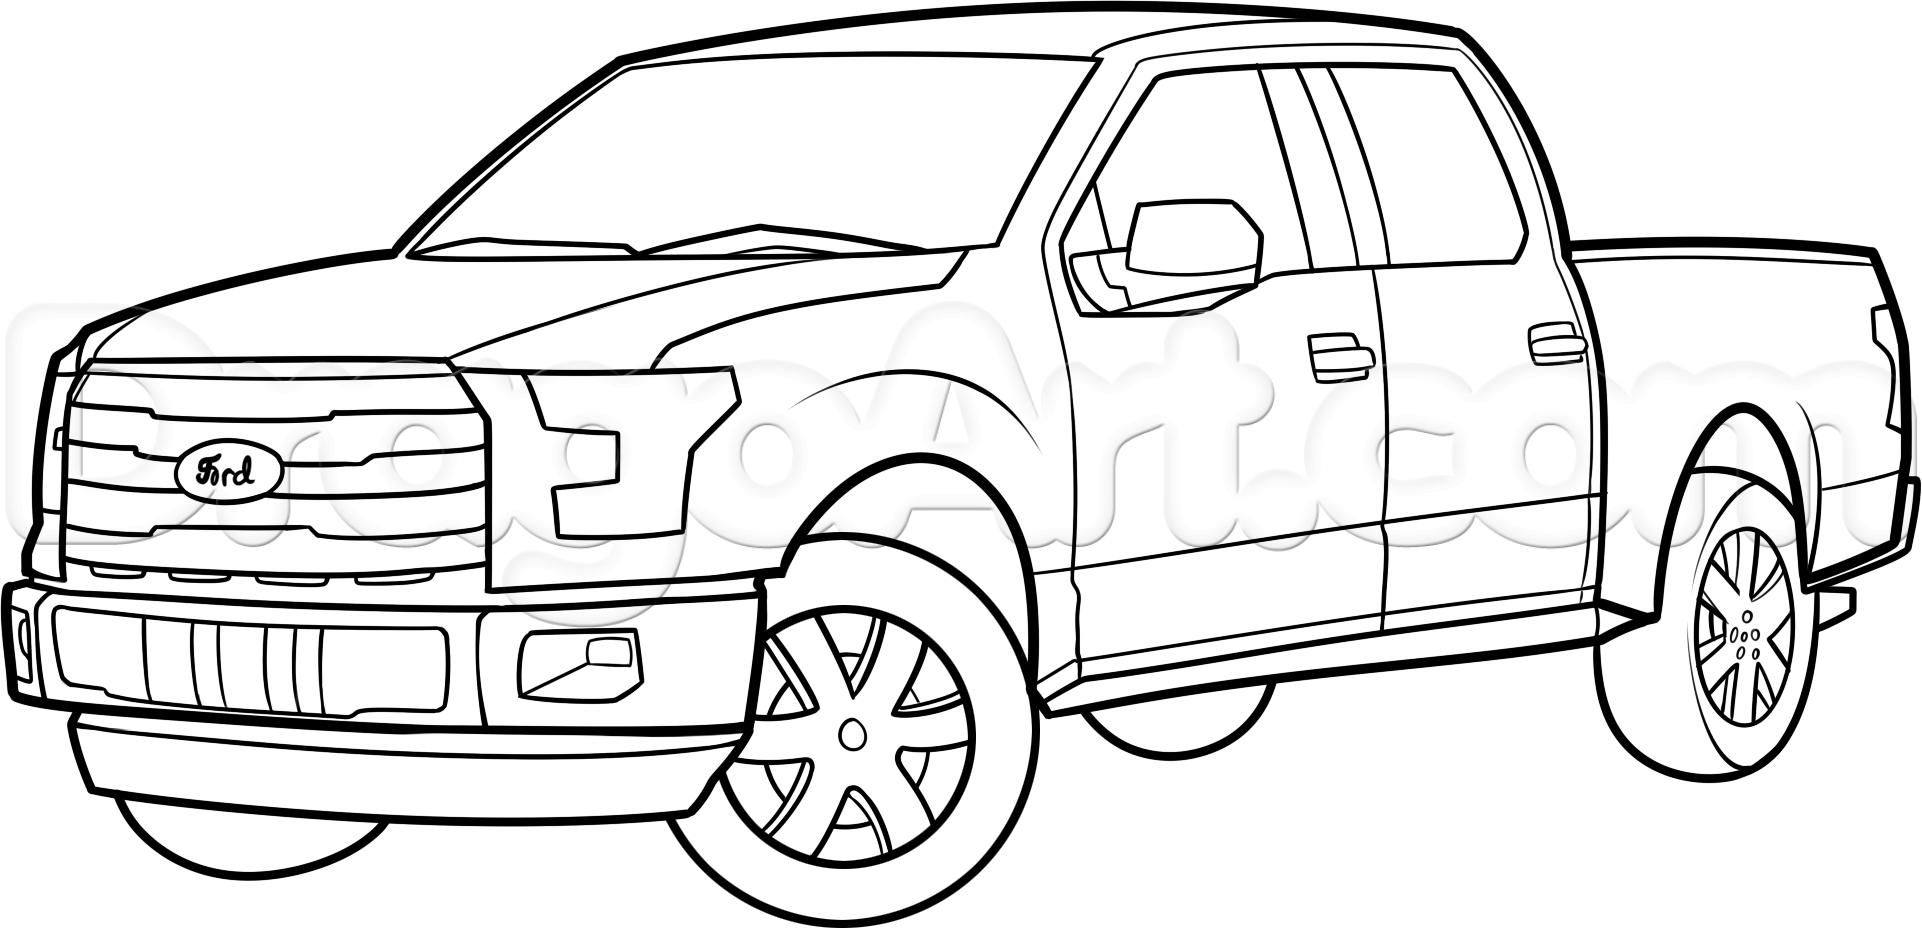 cool truck coloring pages cool fire truck free download coloring page with images pages truck cool coloring